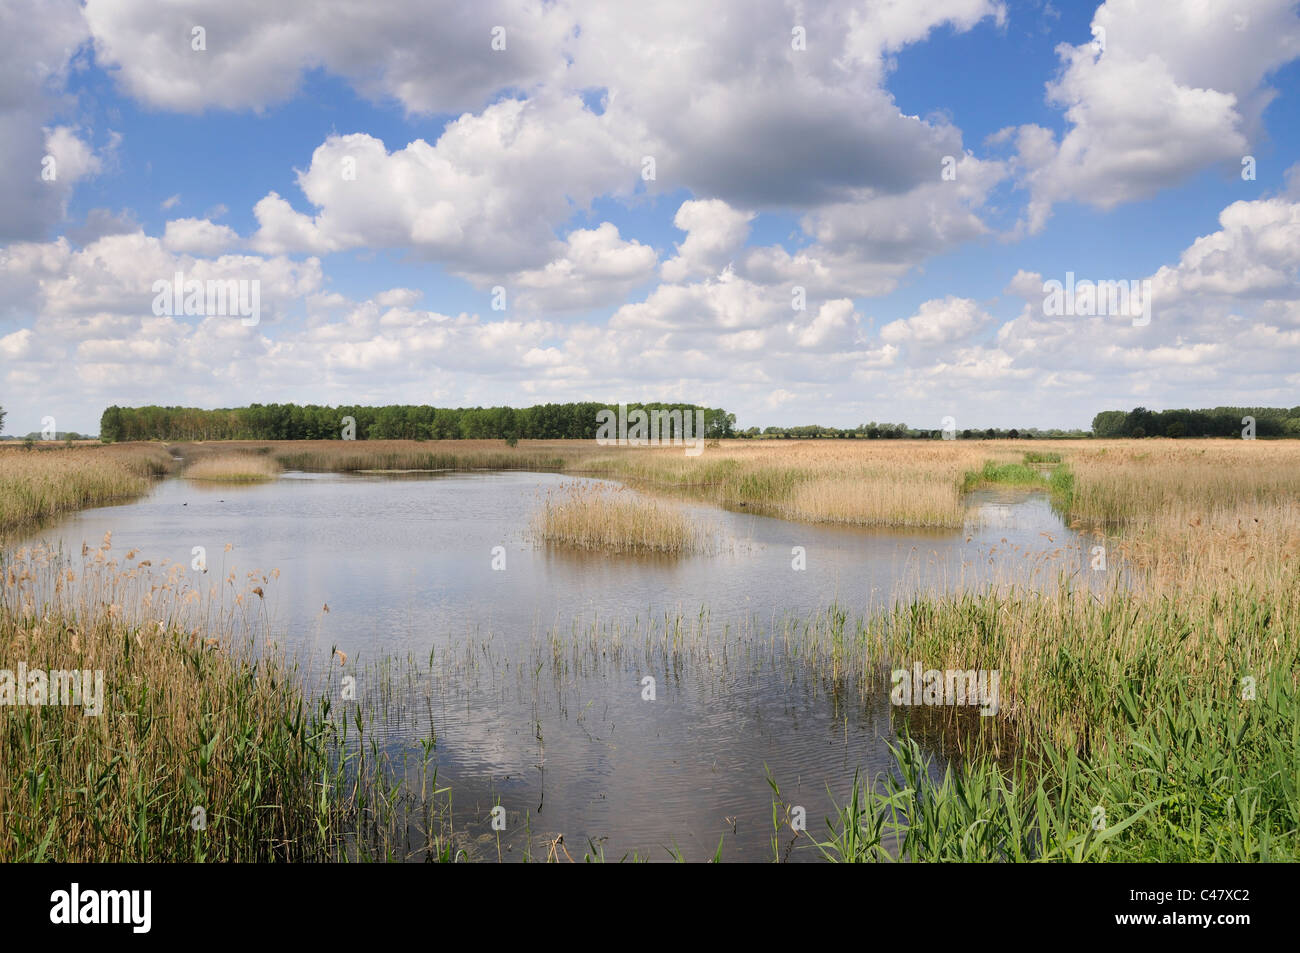 Inland waterway and reedbed, RSPB Lakenheath Fen, Suffolk, England, May - Stock Image